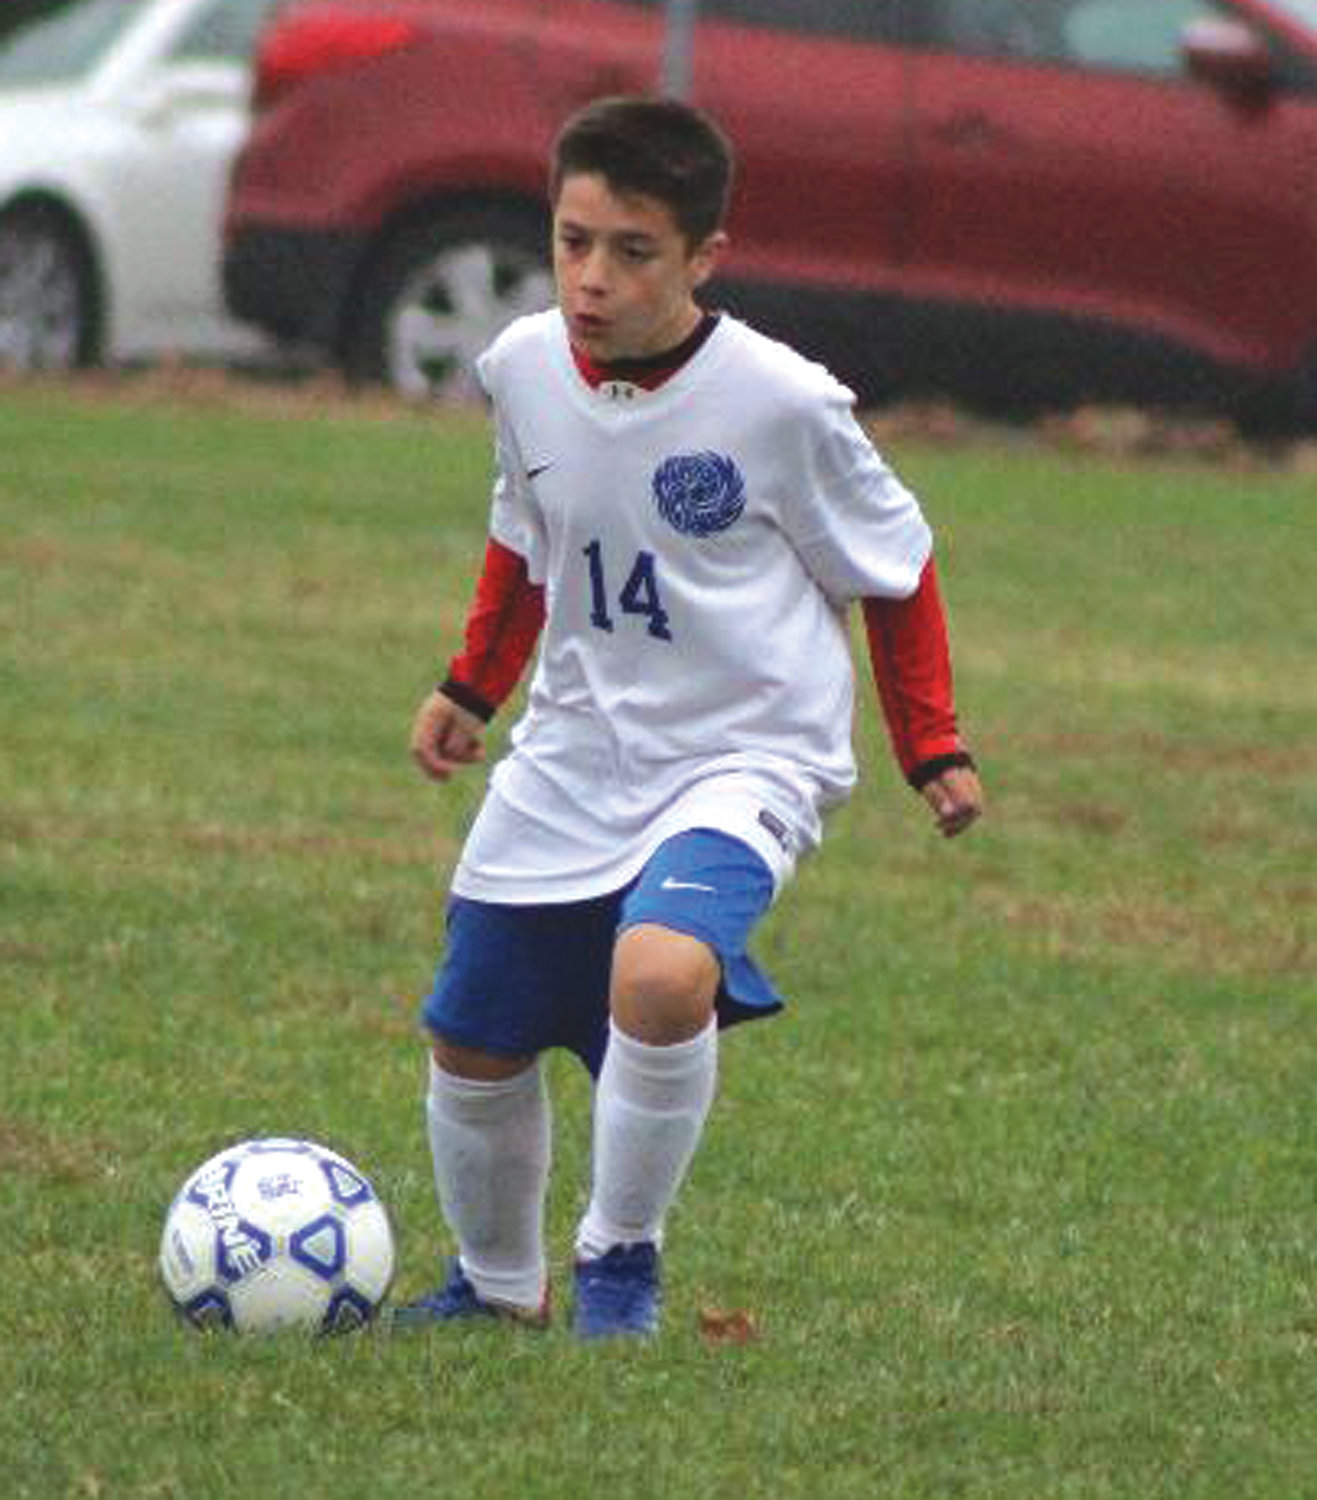 UP THE FIELD: Vets' Gabe Holland dribbles the ball up the field.